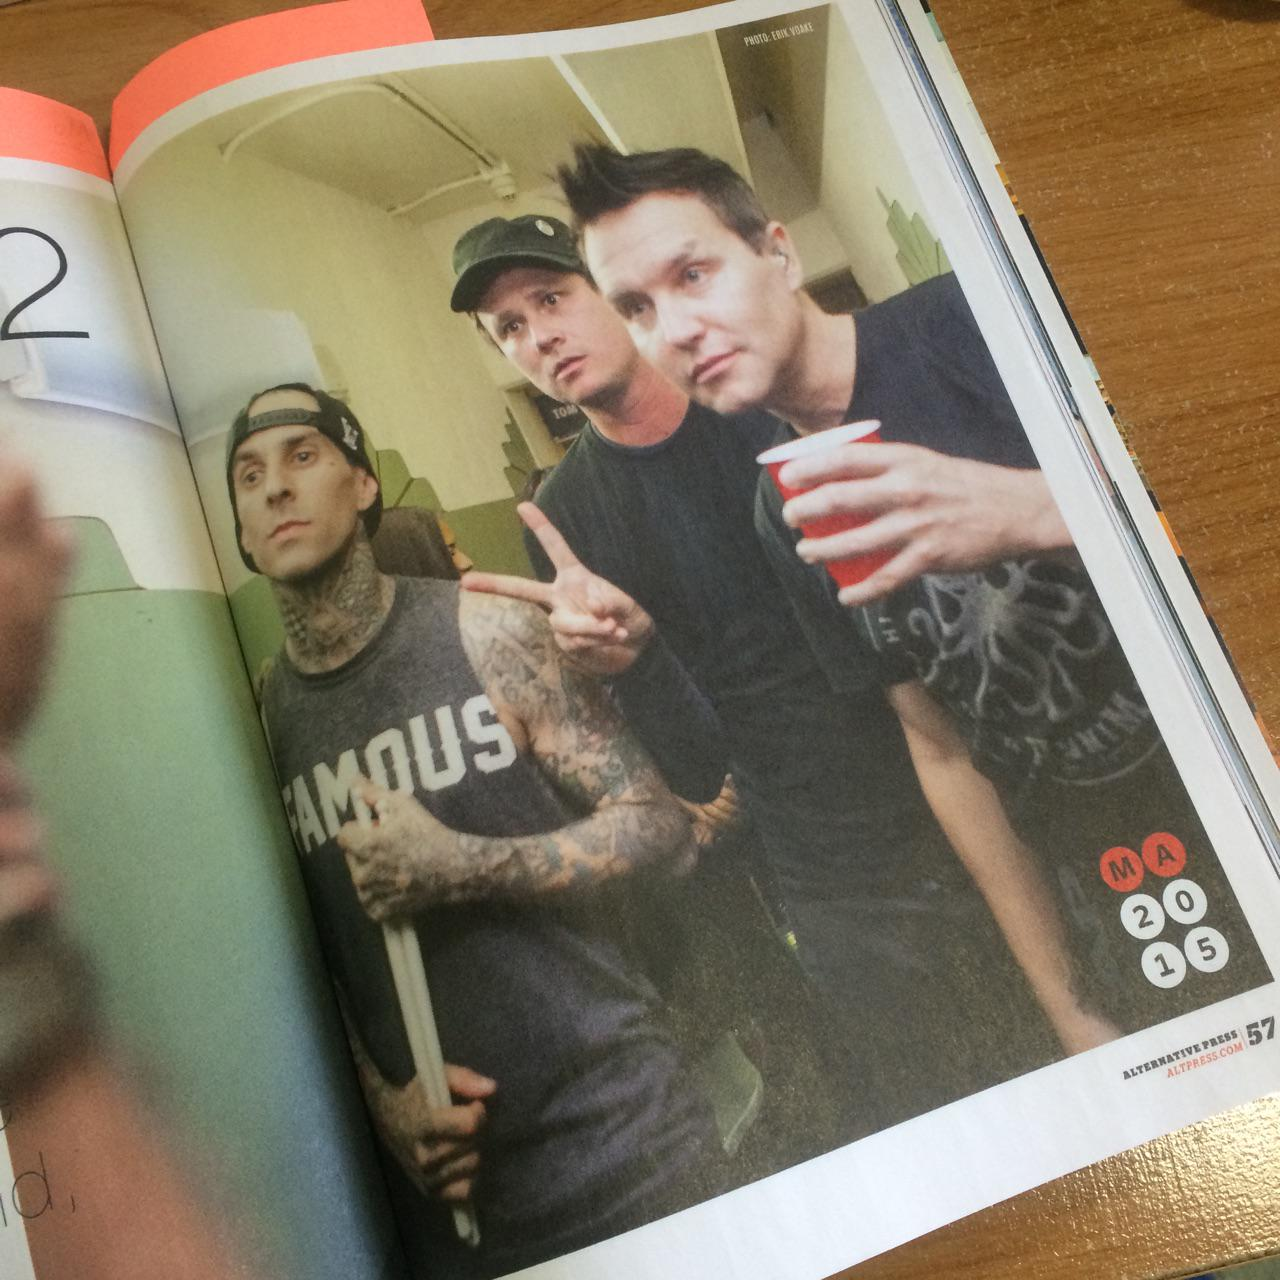 Who else is excited for a new @blink182 album this year!?!? Read more in AP319 Most Anticipated- in stores now! http://t.co/2Dx6RsqFoE